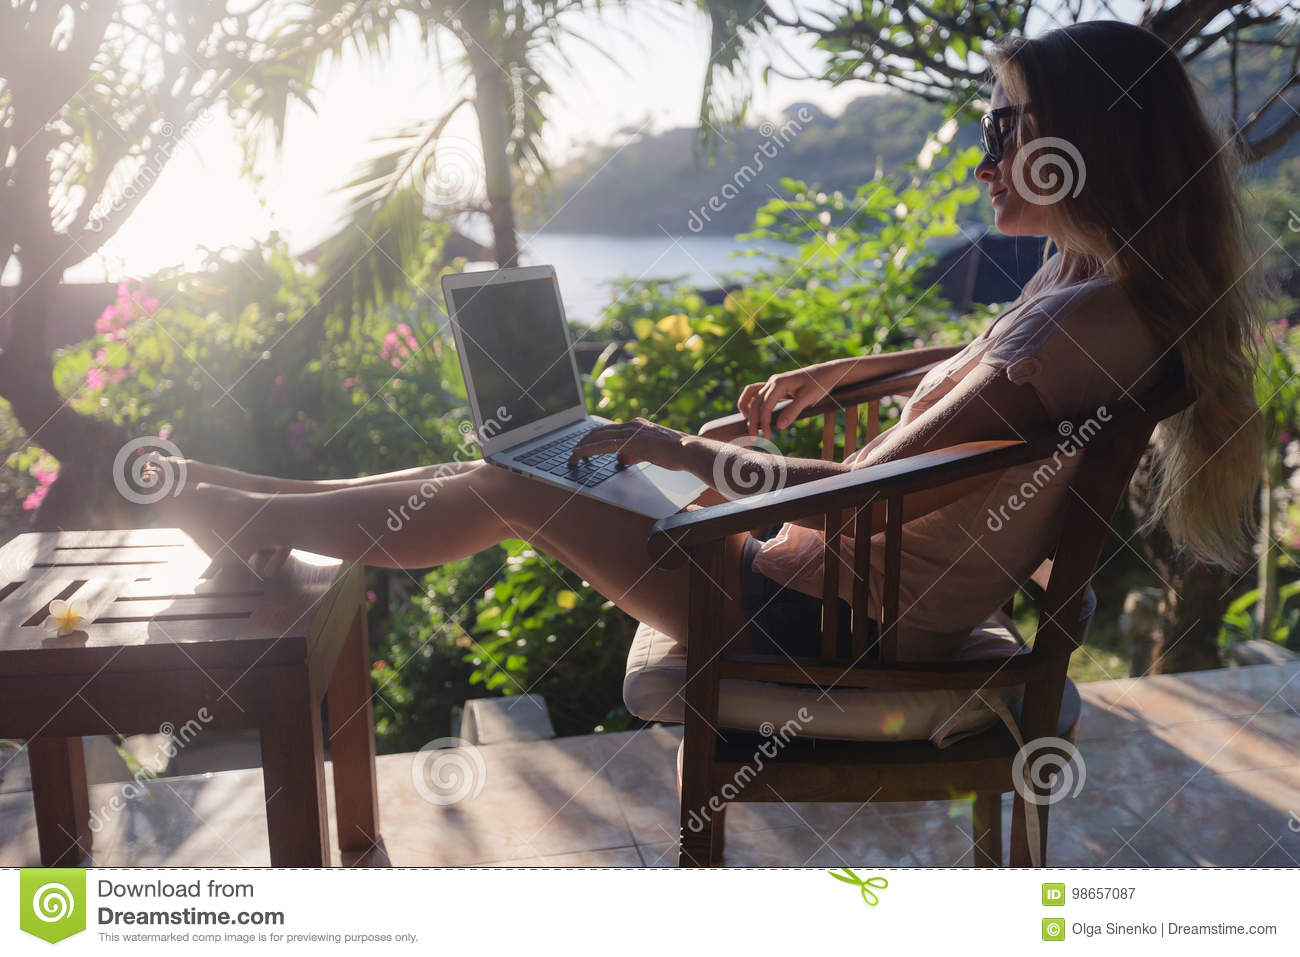 Female working with her laptop outdoors